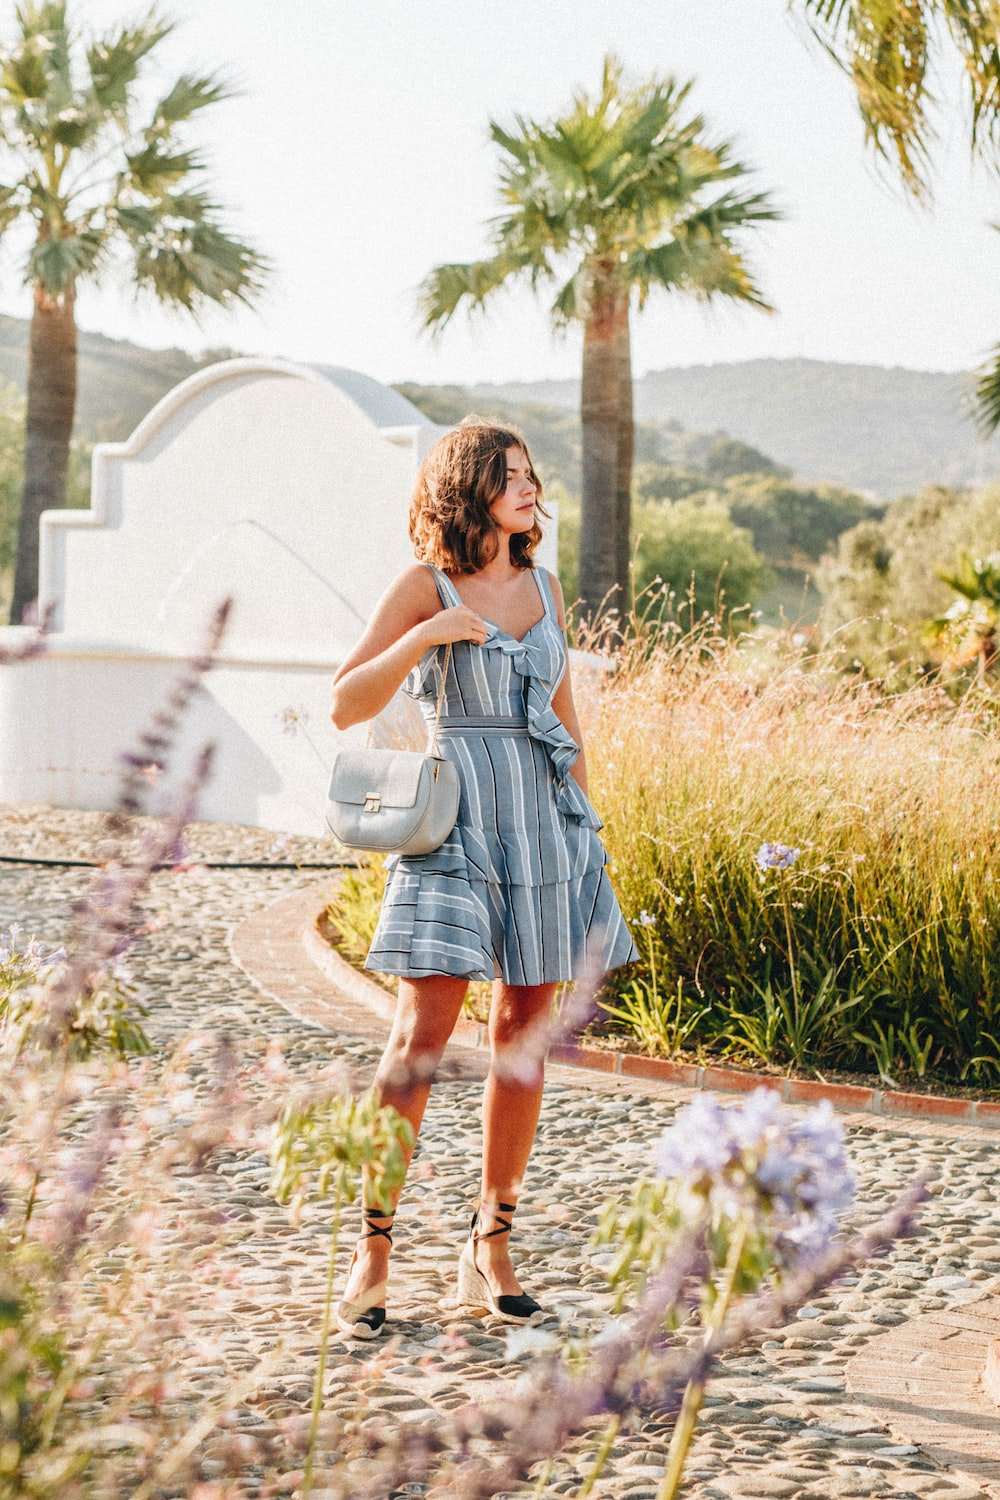 woman in gray sundress carrying sling bag in middle of pathway during daytime